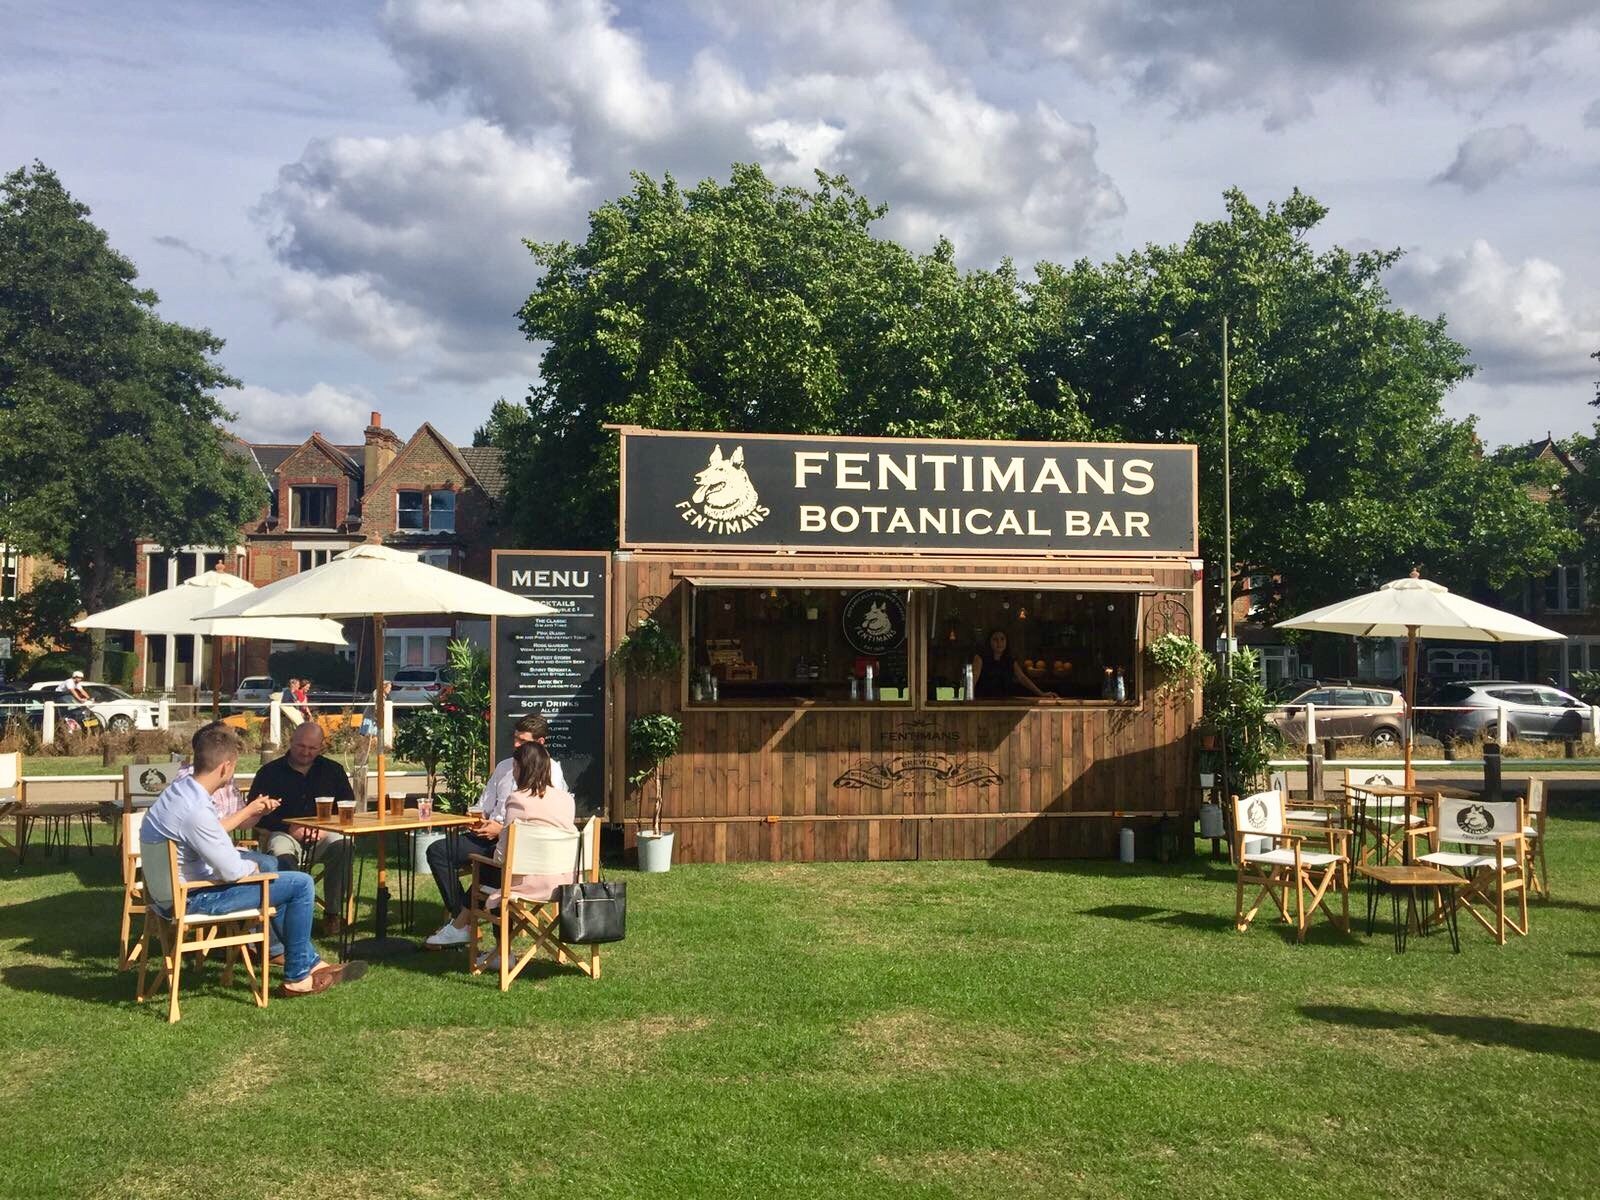 Celebrating Festival Sponsor, Fentimans